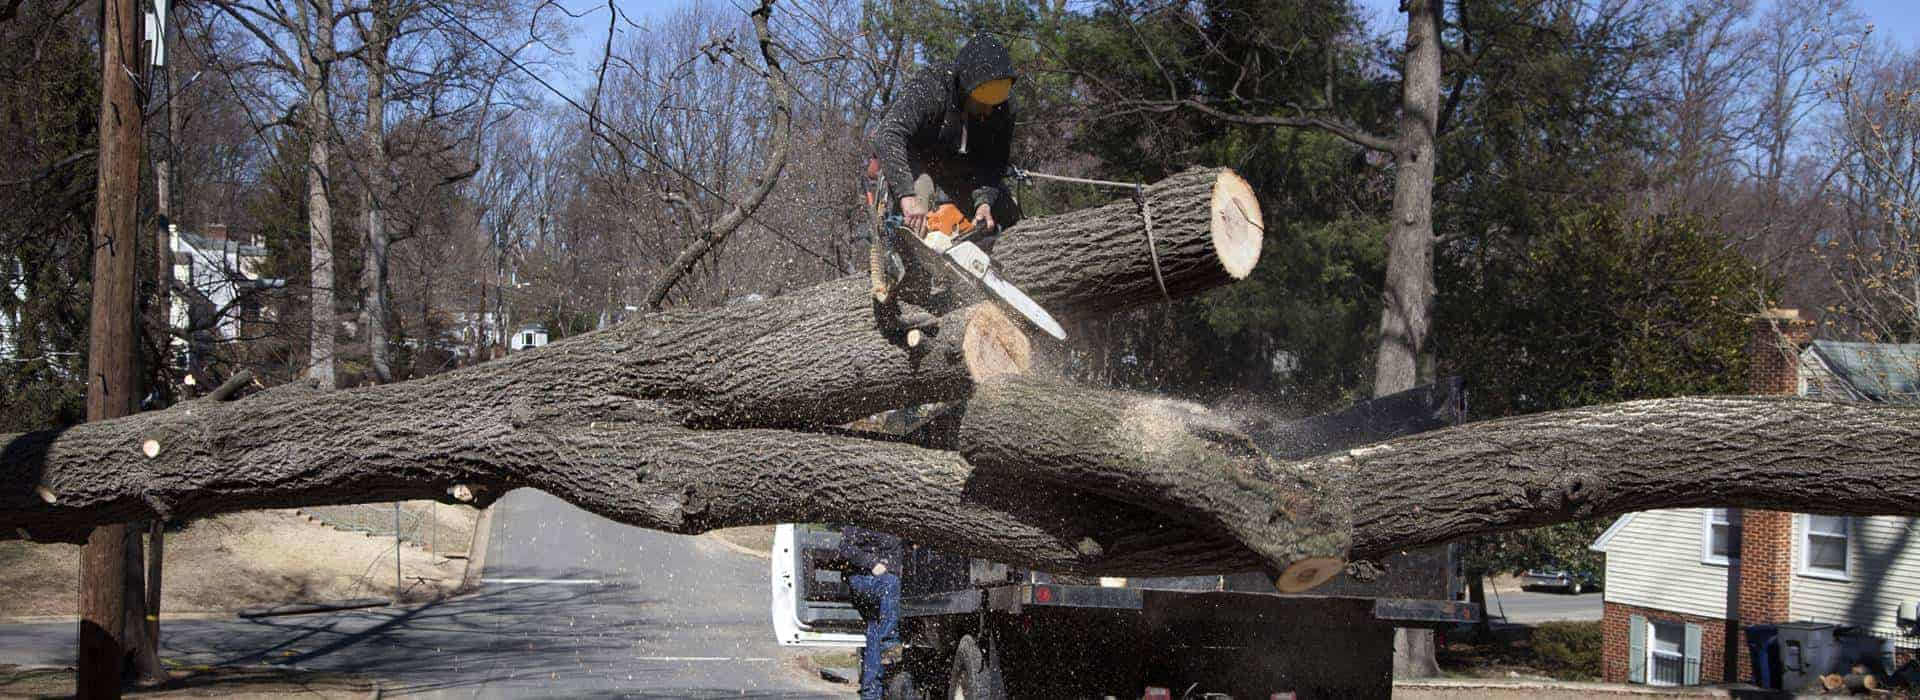 Man working on cutting uprooted tree blocking roads due to gusty wind